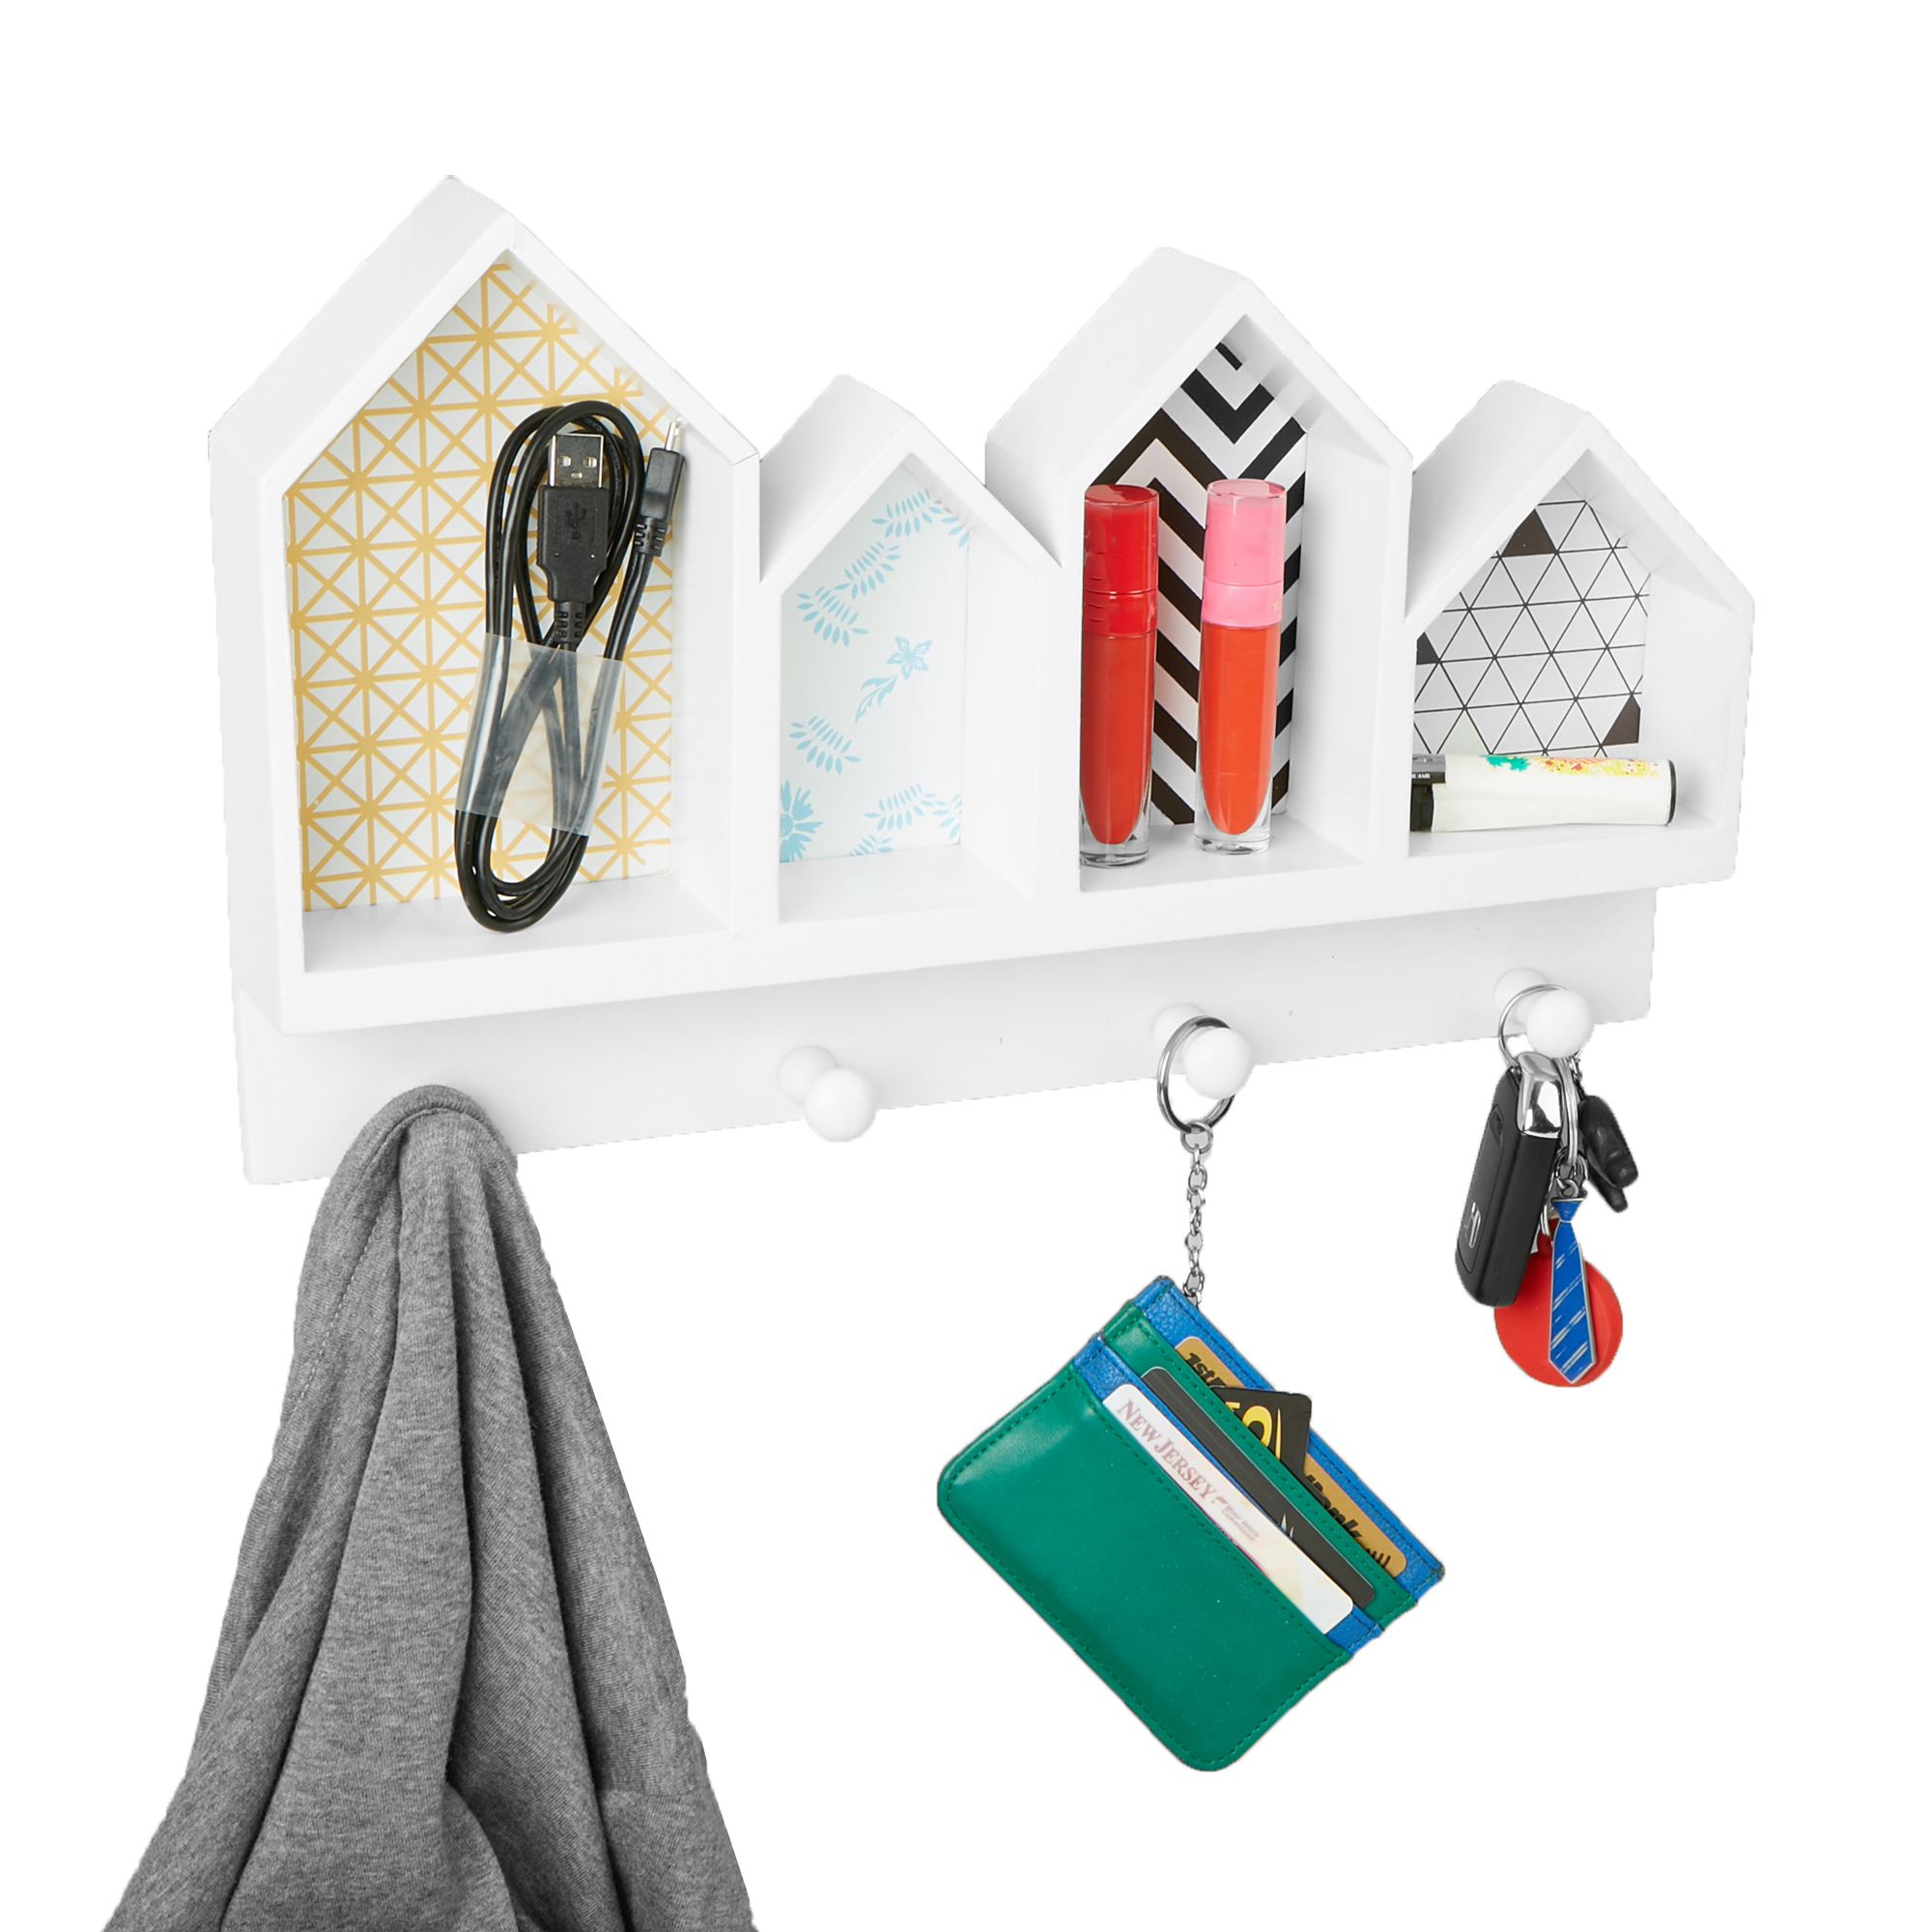 Mind Reader Door or Wall Mount Coat and Key Rack with 4 Storage Compartments, White by EMS Mind Reader LLC